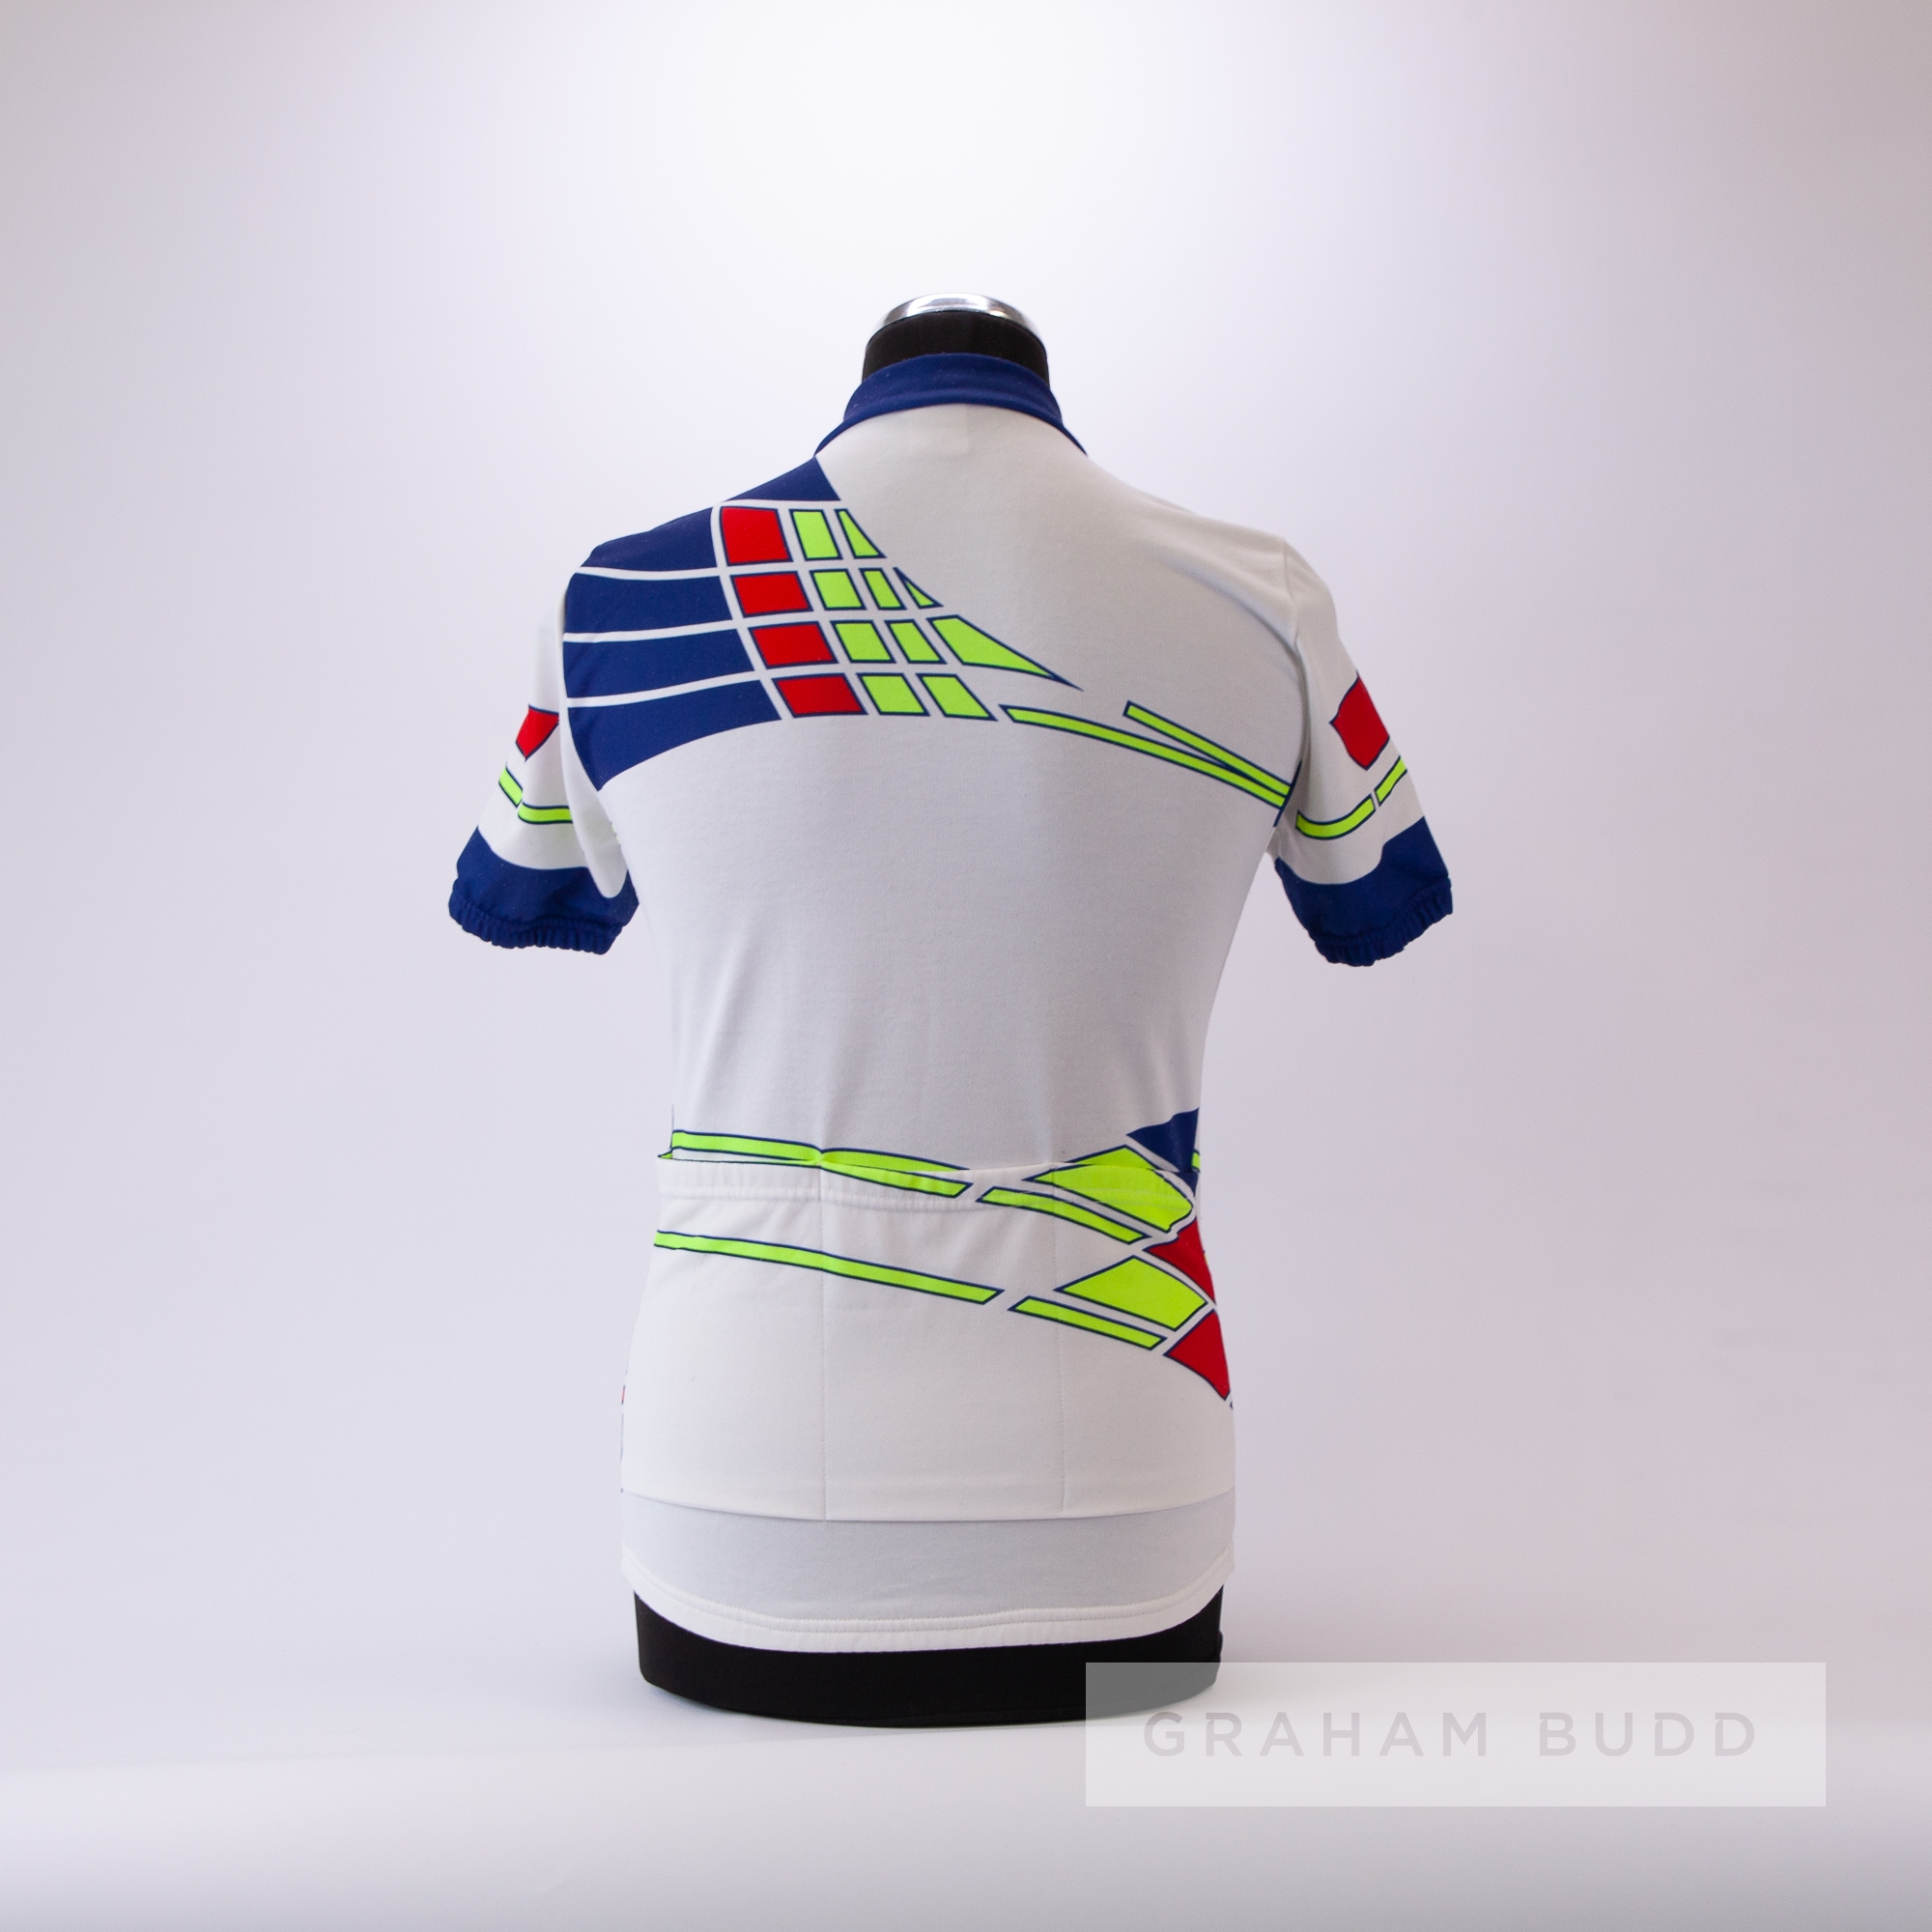 1986 white, navy, red and yellow Raleigh Cycling team race jersey, scarce, polyester short-sleeved - Image 4 of 4